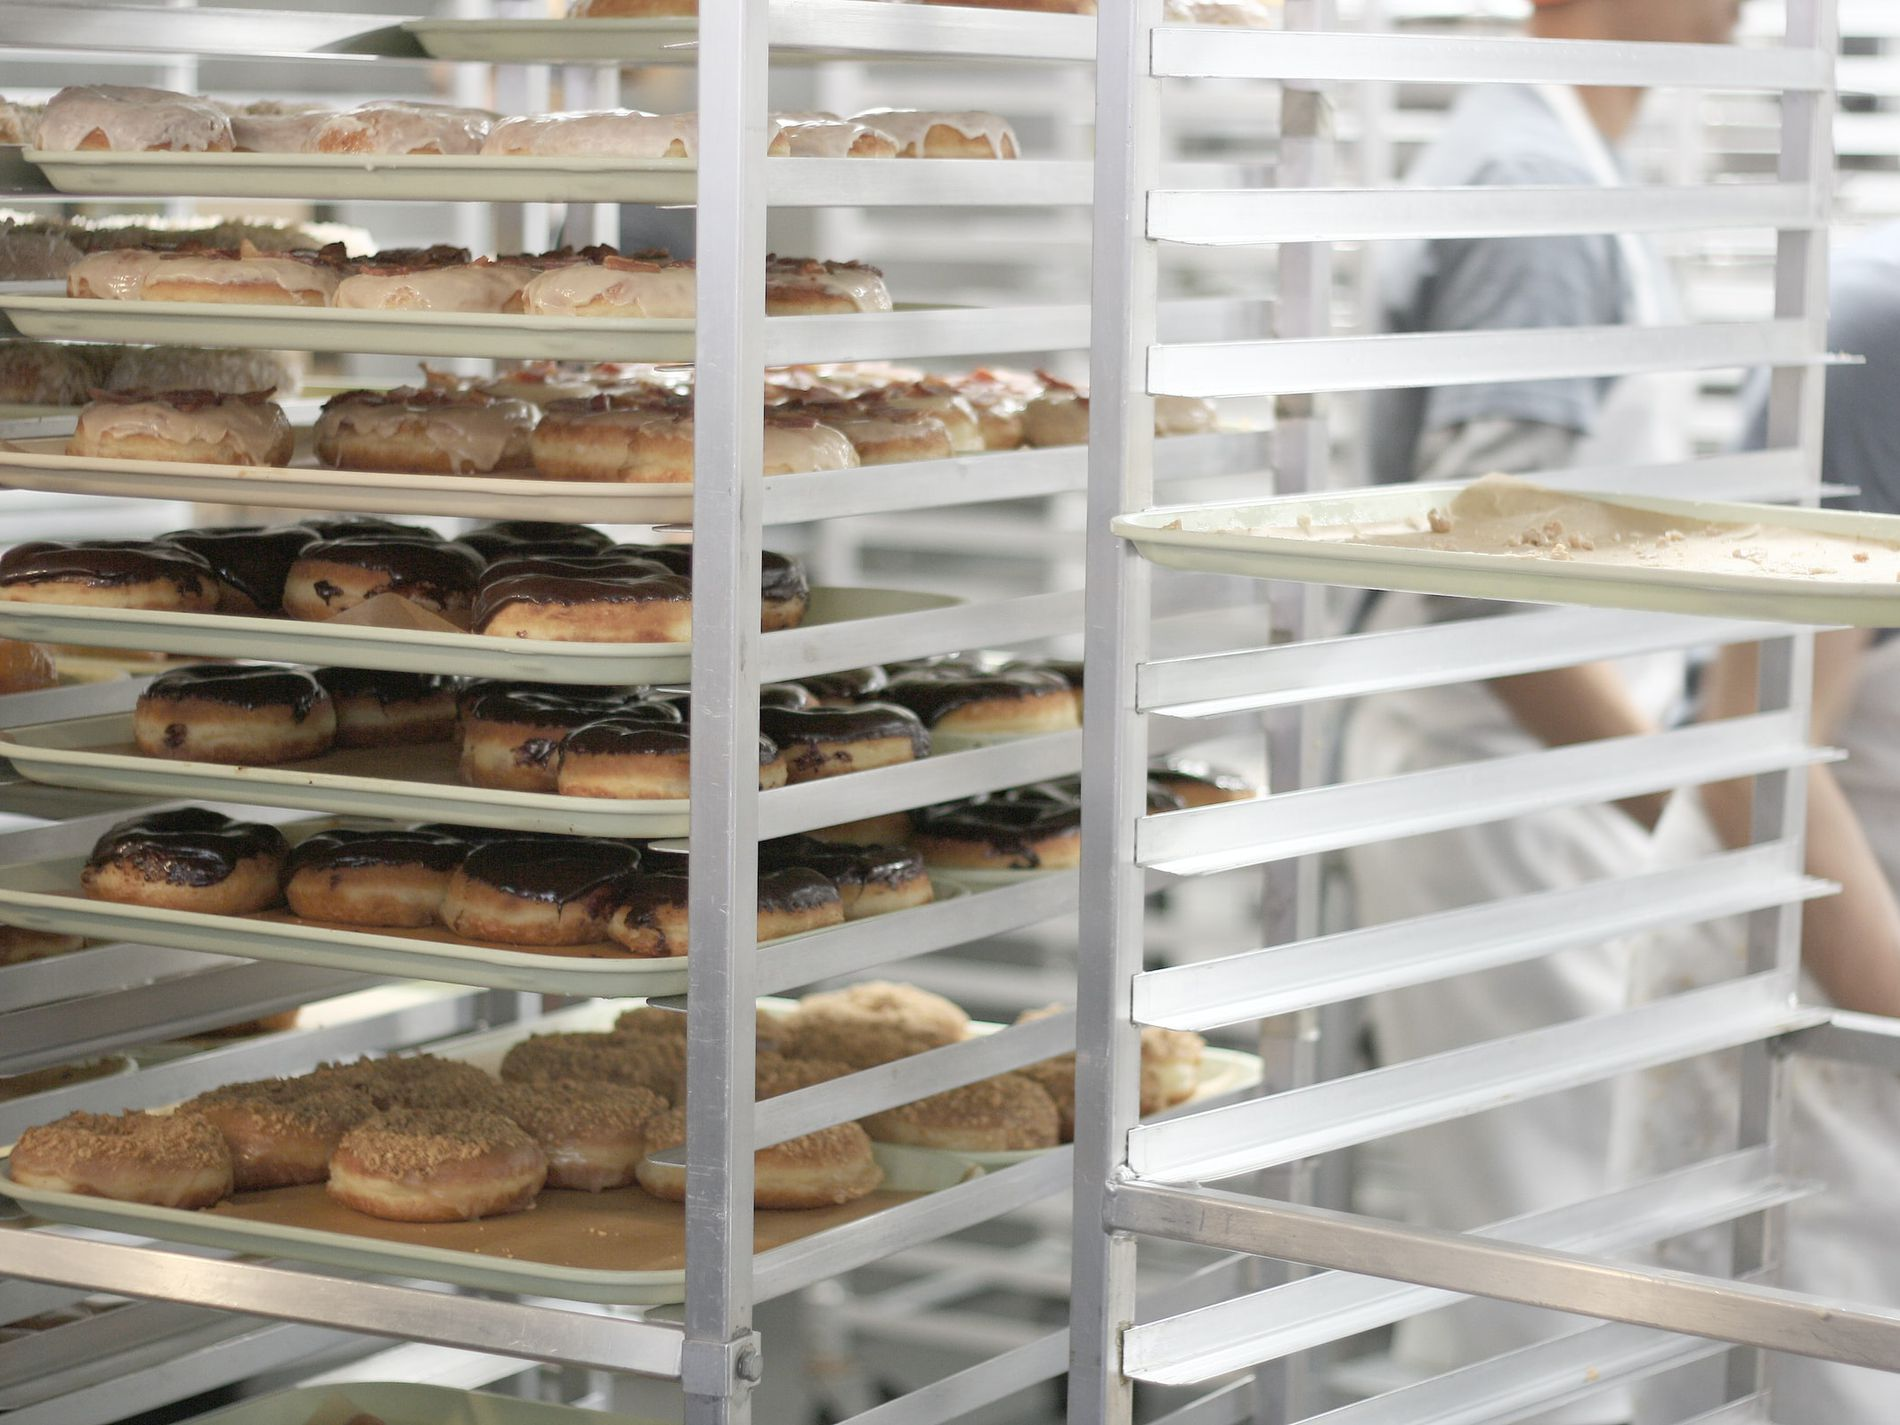 NSA17763JF - Perfect Cafe-Bakery Opportunity.  May Suit a Bakery Chef.